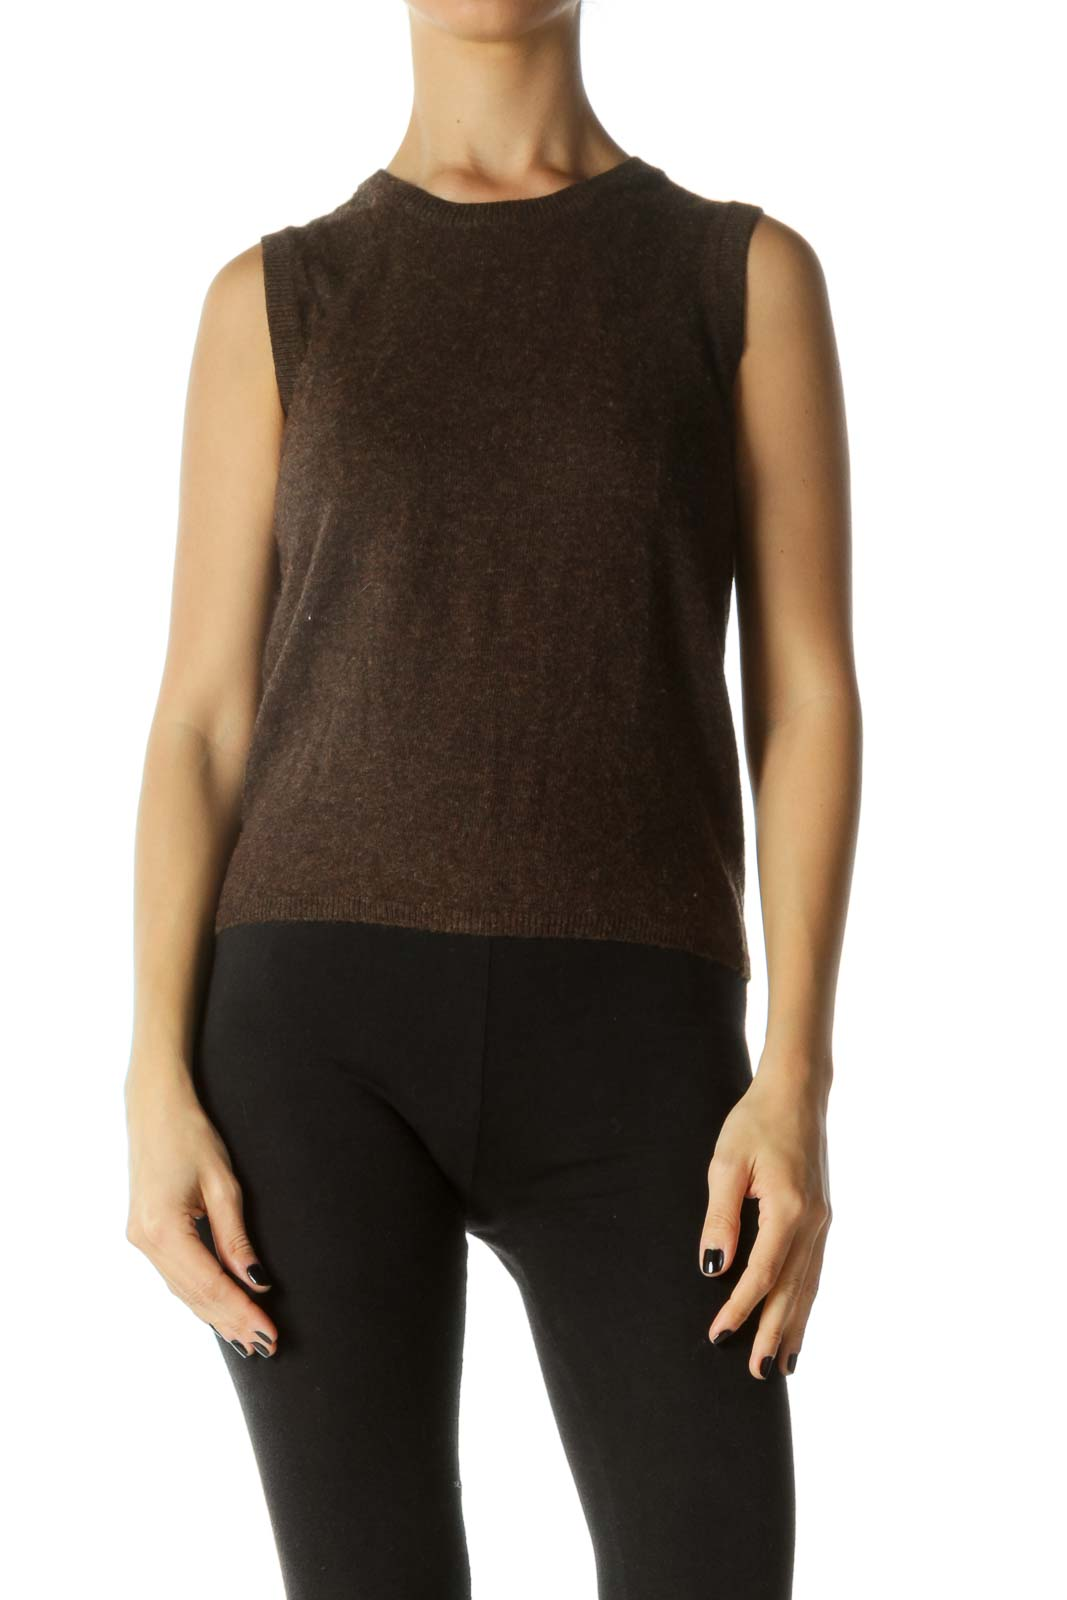 Brown Round Neck Sleeveless Knit Top